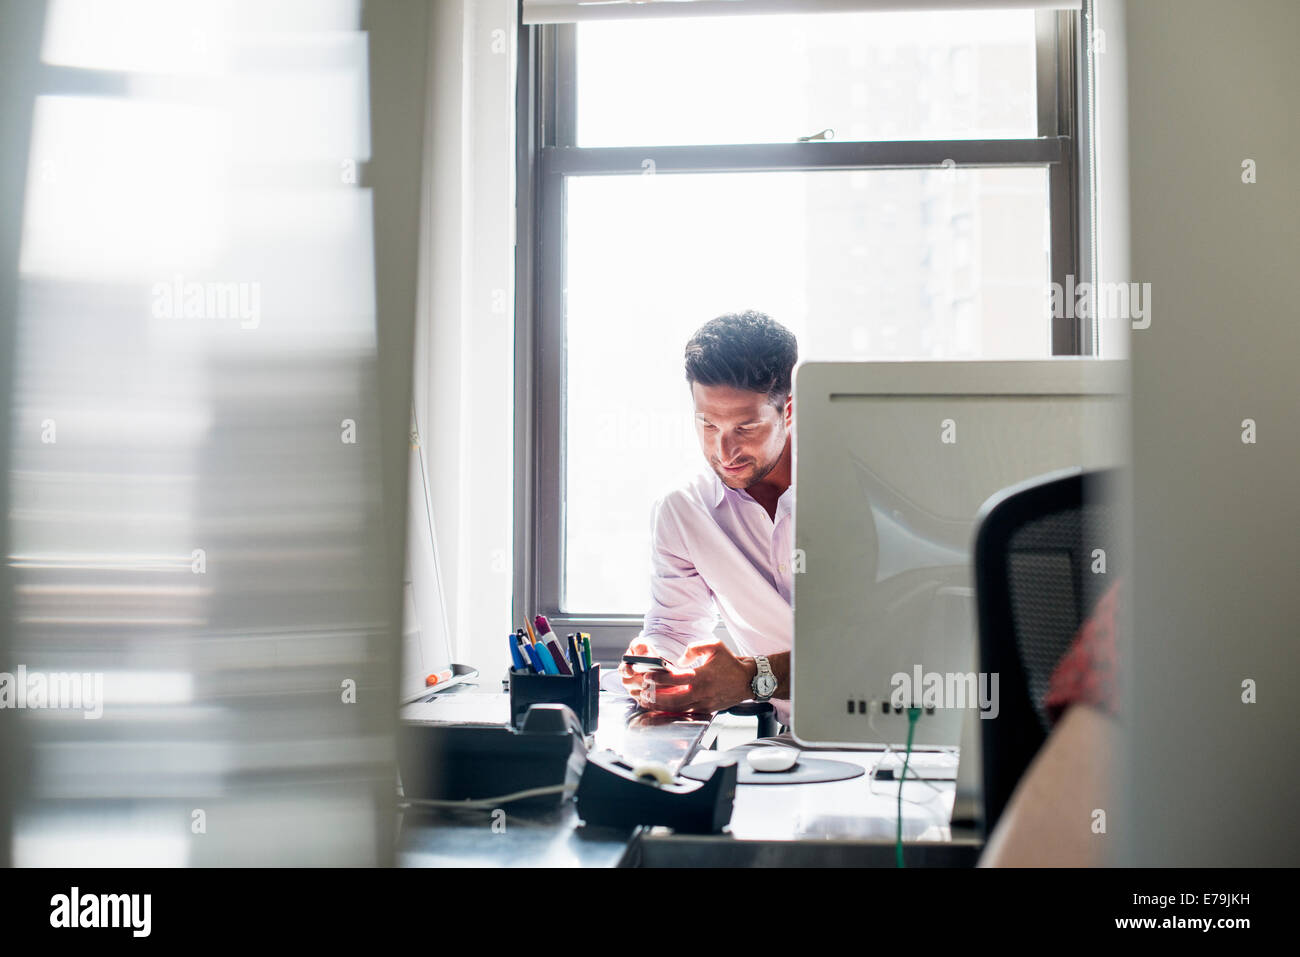 Office life. A man checking his phone in an office. - Stock Image